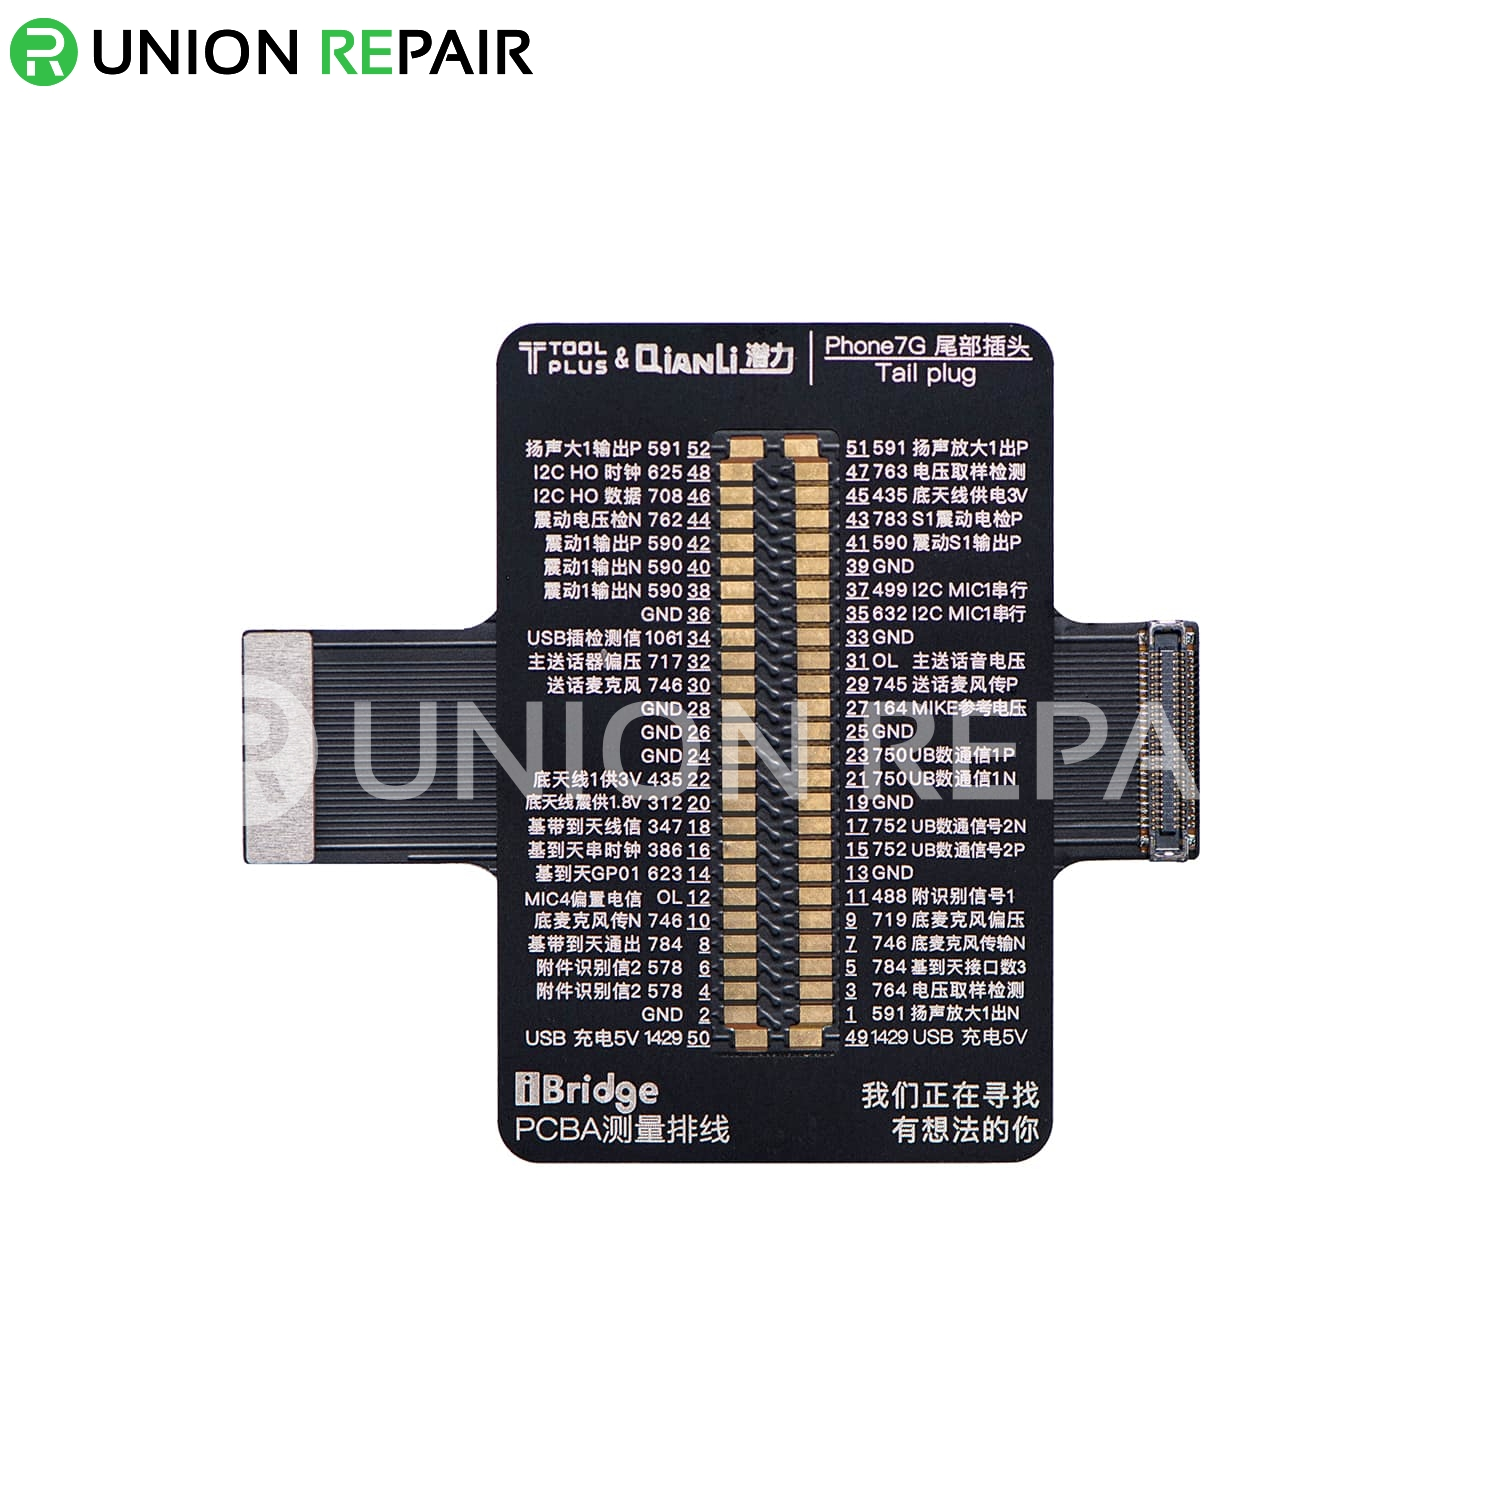 QianLi ToolPlus iBridge Testing Cable for Front Camera/Rear Camera/Dock Connector/Touch, Type: For iPhone 7